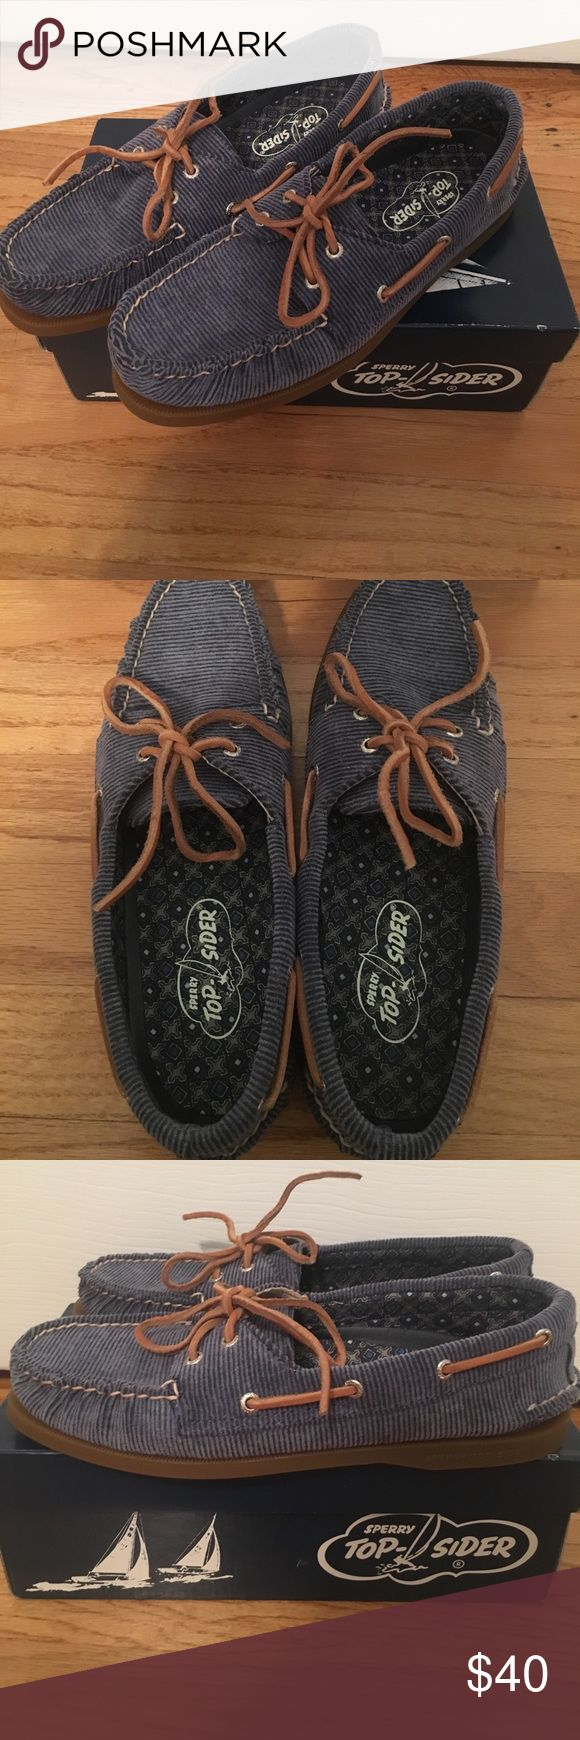 ⭐️SALE⭐️ Sperry Top-Sider Blue Corduroy Boat Shoes PRICE DROP! Size: 9 Brand new NEVER worn before! Perfect shoes for the fall and so comfortable for every day use! Purchased on sale at Nordstrom's and still in the box! Women's size 9! Make ANY offer if interested! Sperry Top-Sider Shoes Flats & Loafers